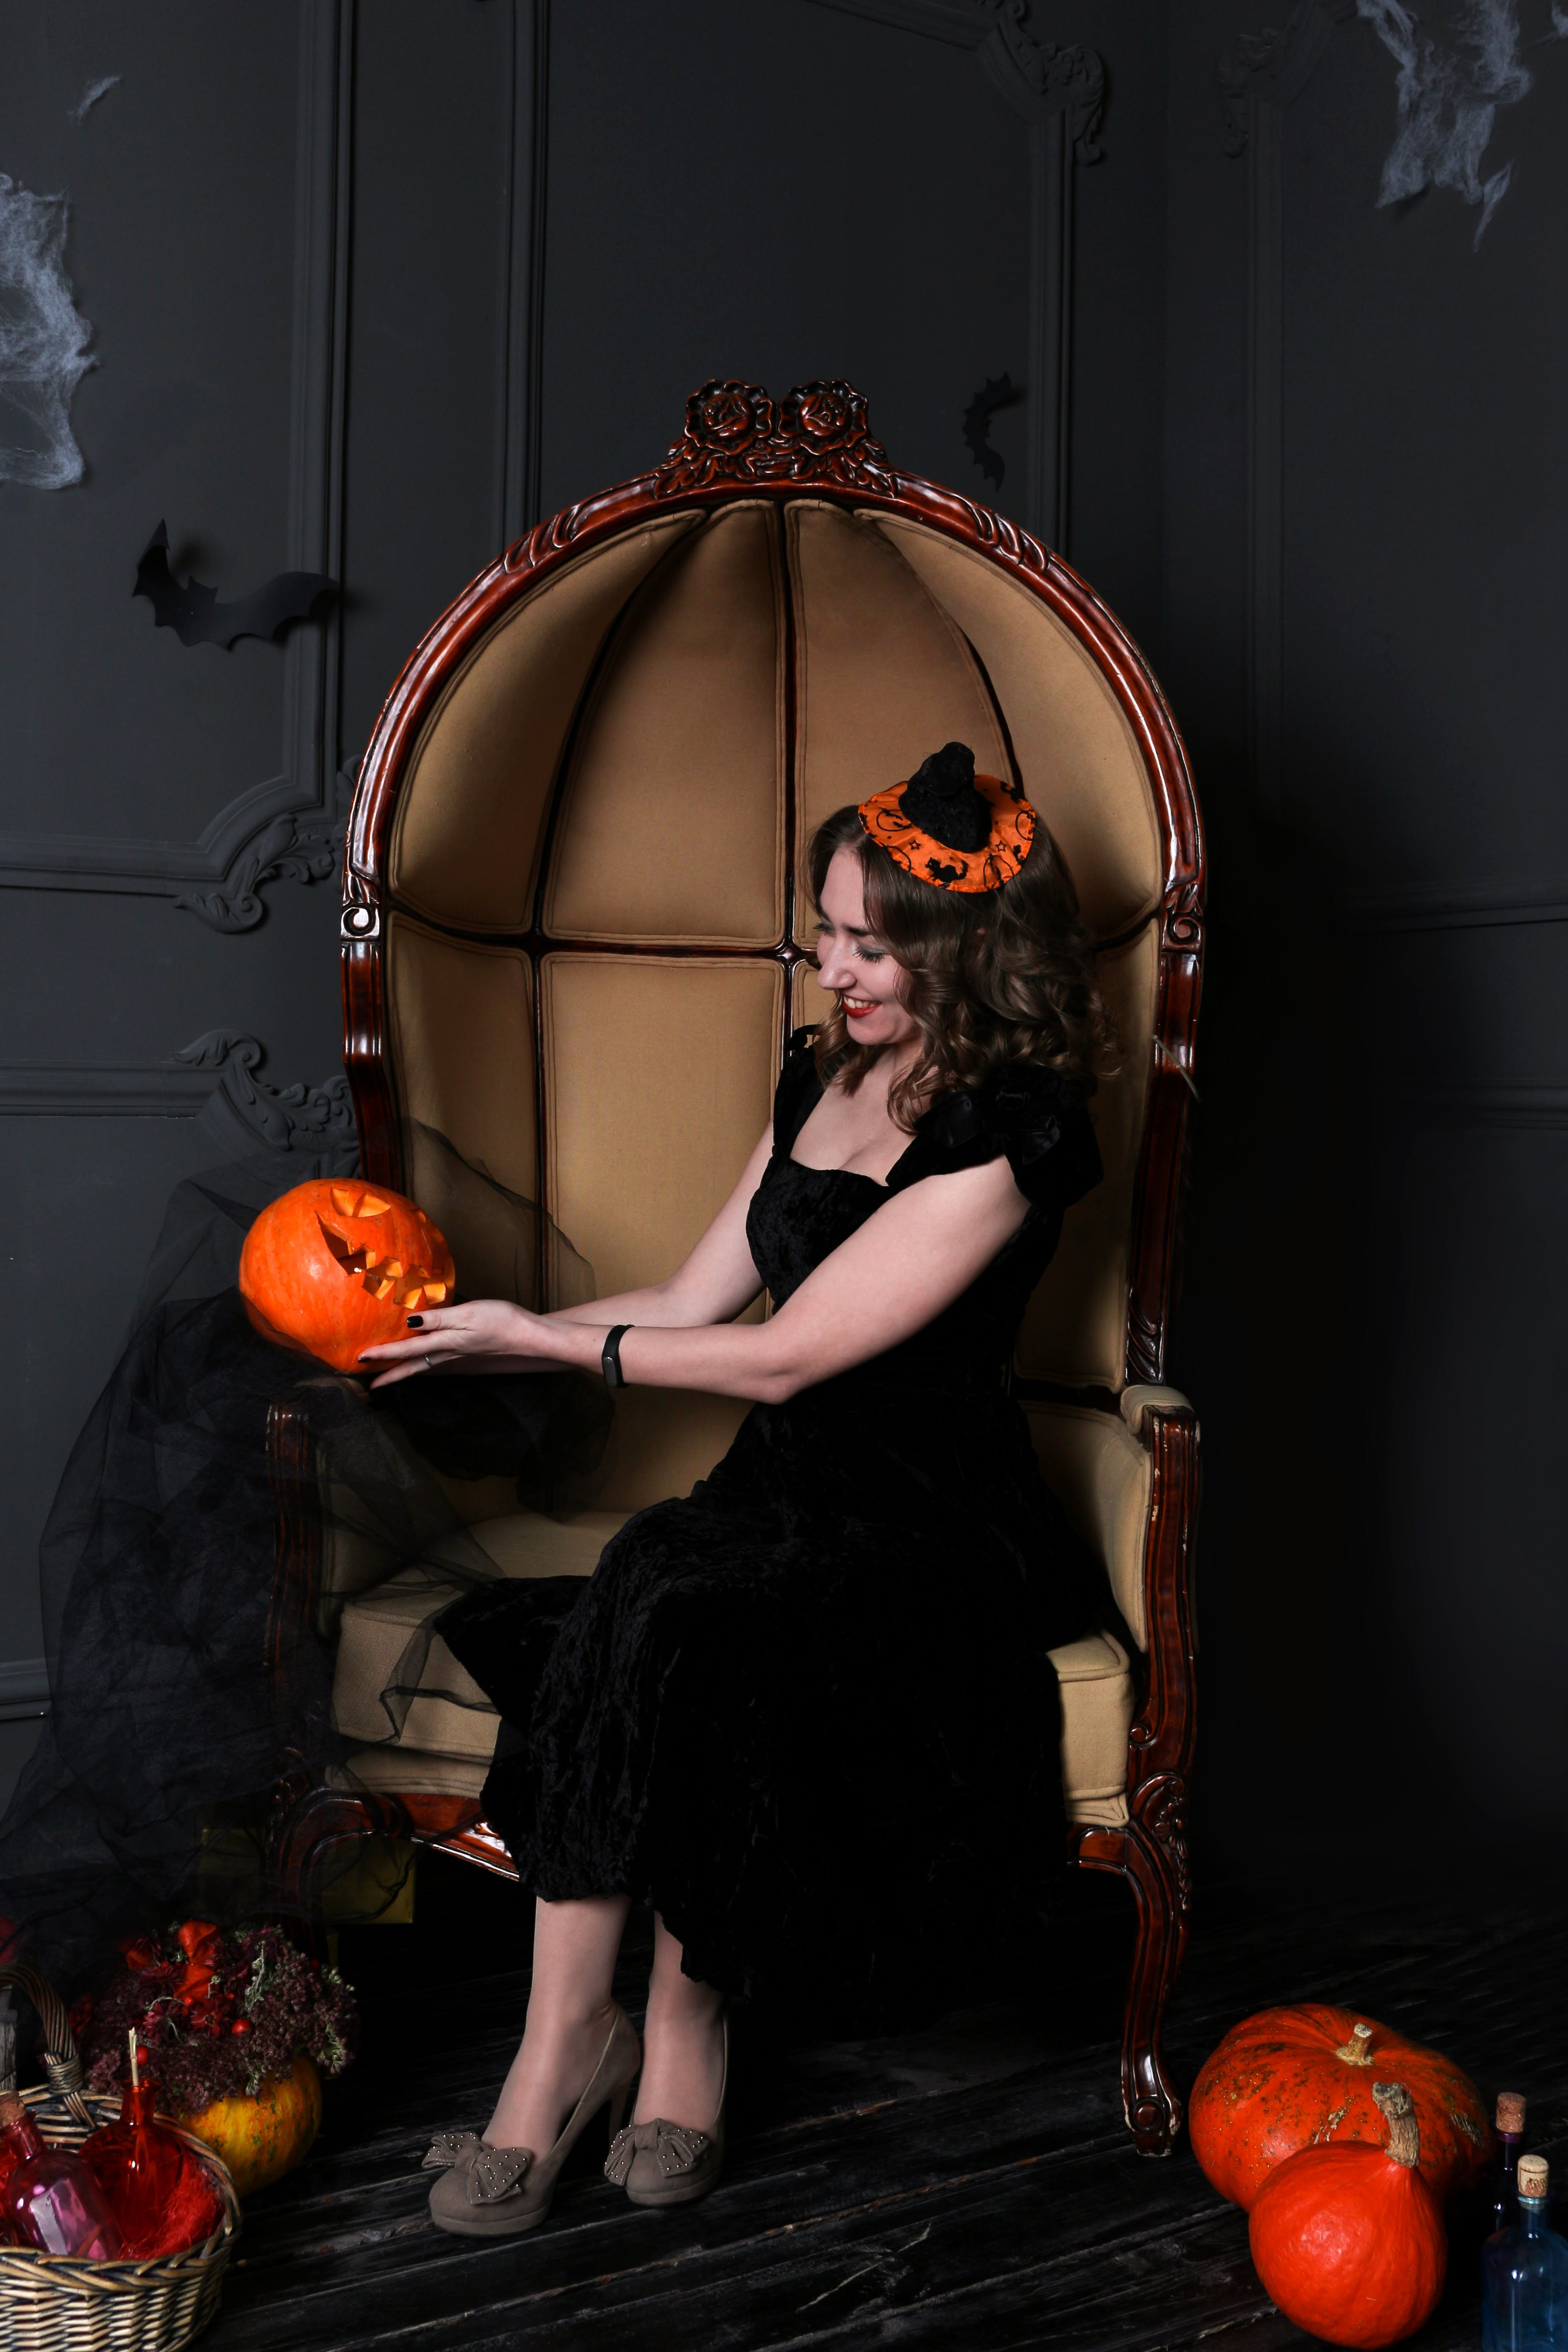 Woman Sitting on Chair Holding Jack-o-lantern